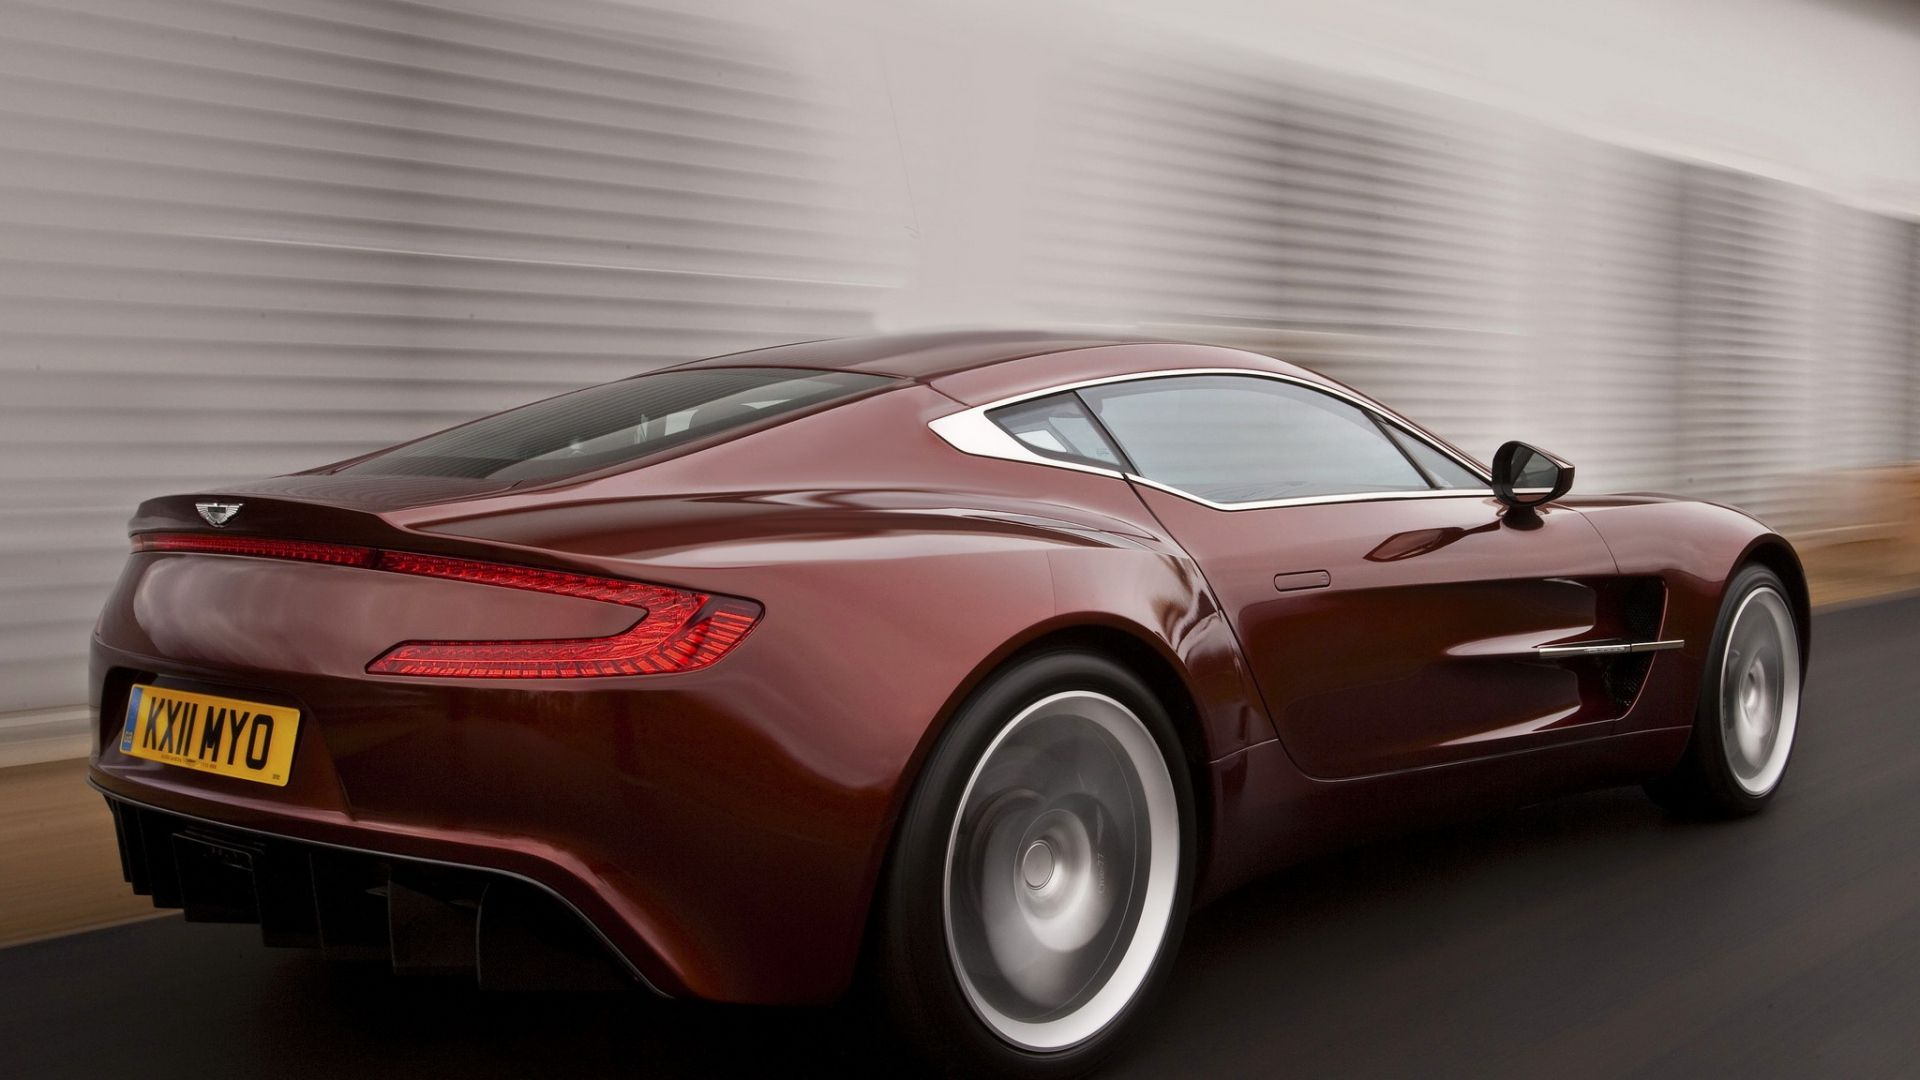 1920x1080 Wallpaper Aston Martin One 77 2009 Red Side View